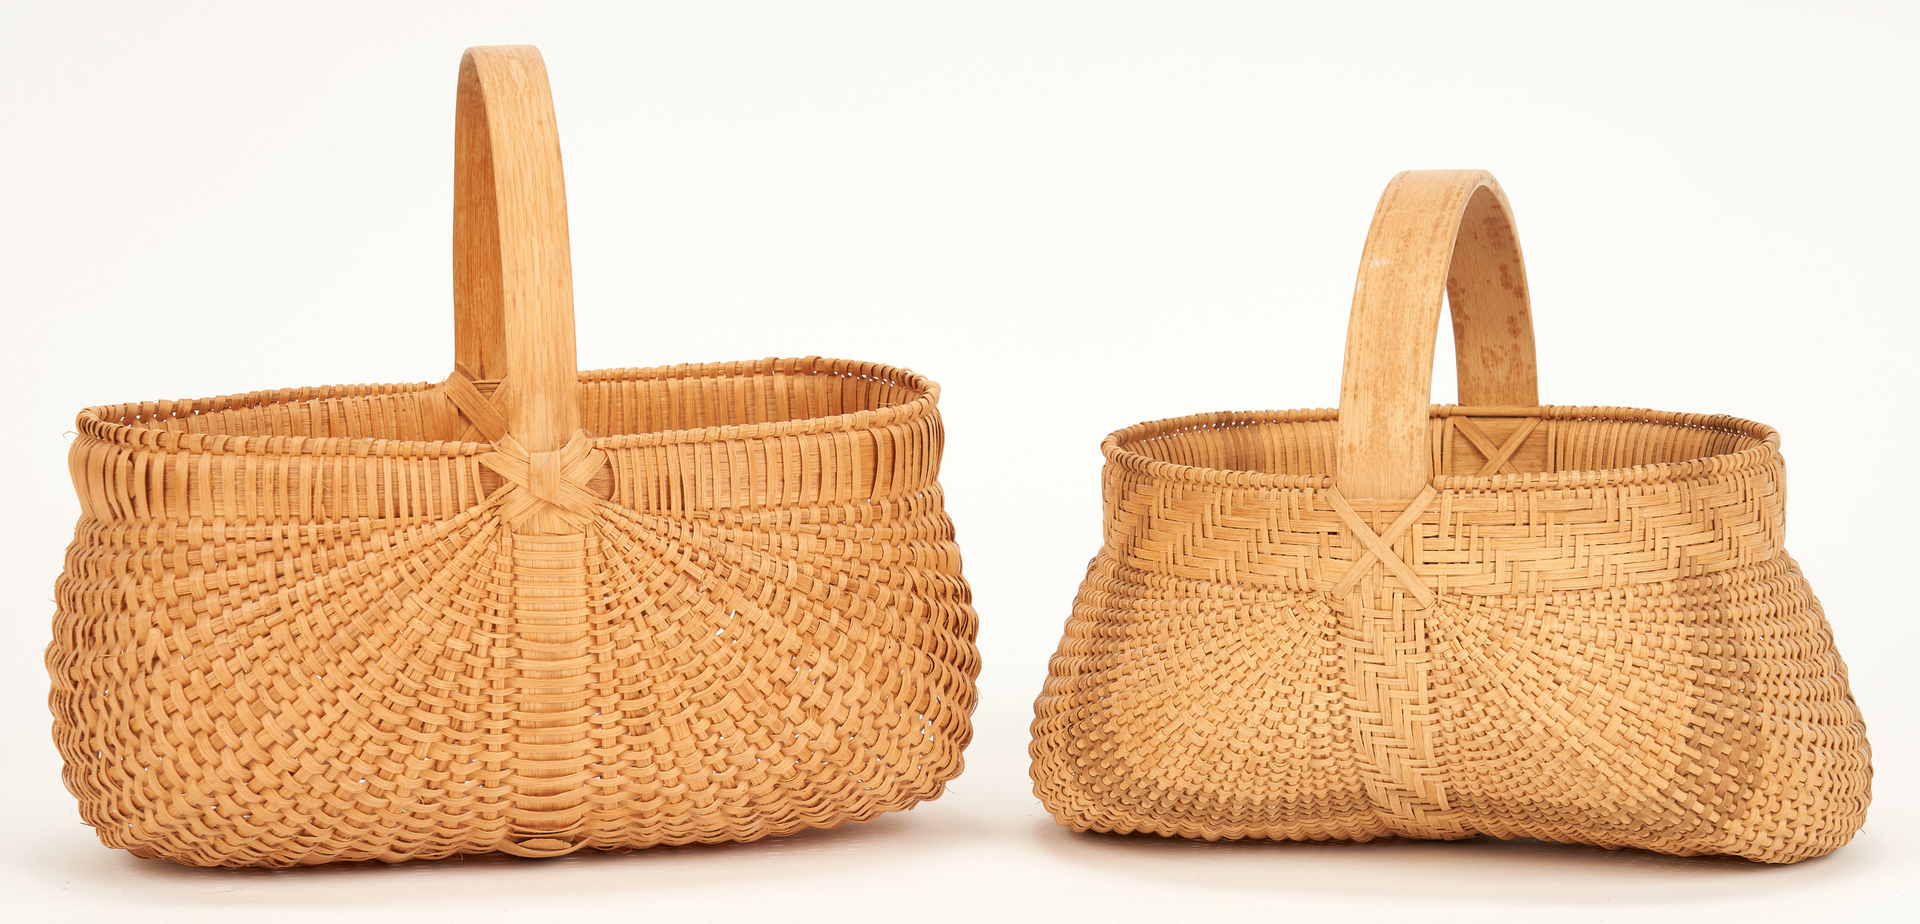 Lot 888: 6 Baskets incl. 2 Prater Family Baskets